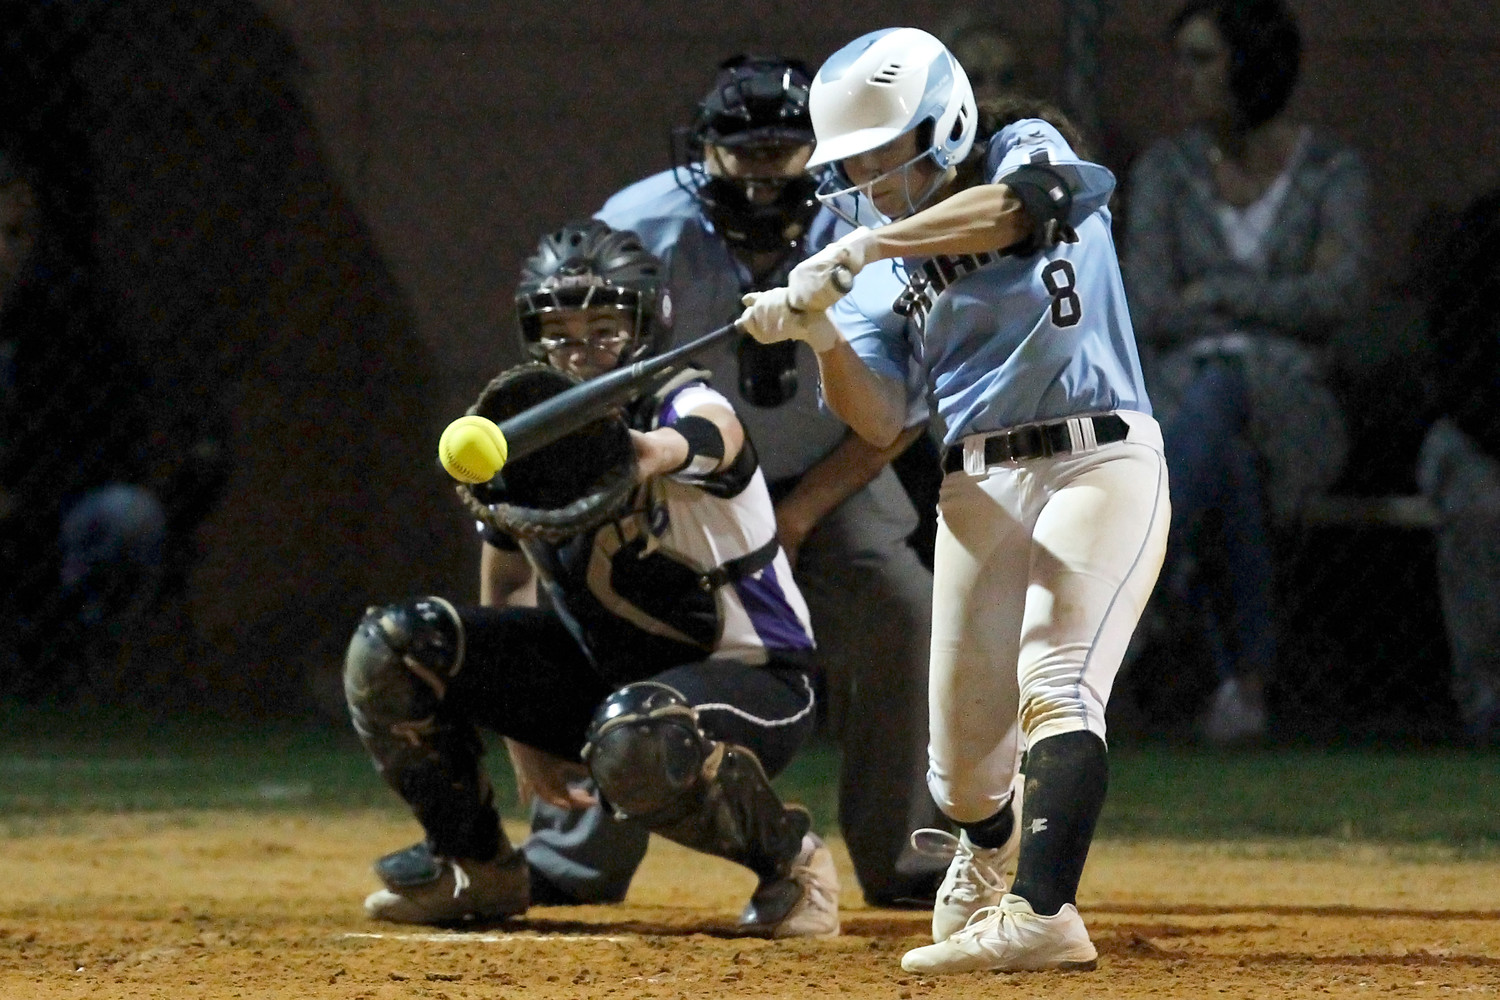 Michelle Leone smacks a solid base hit.